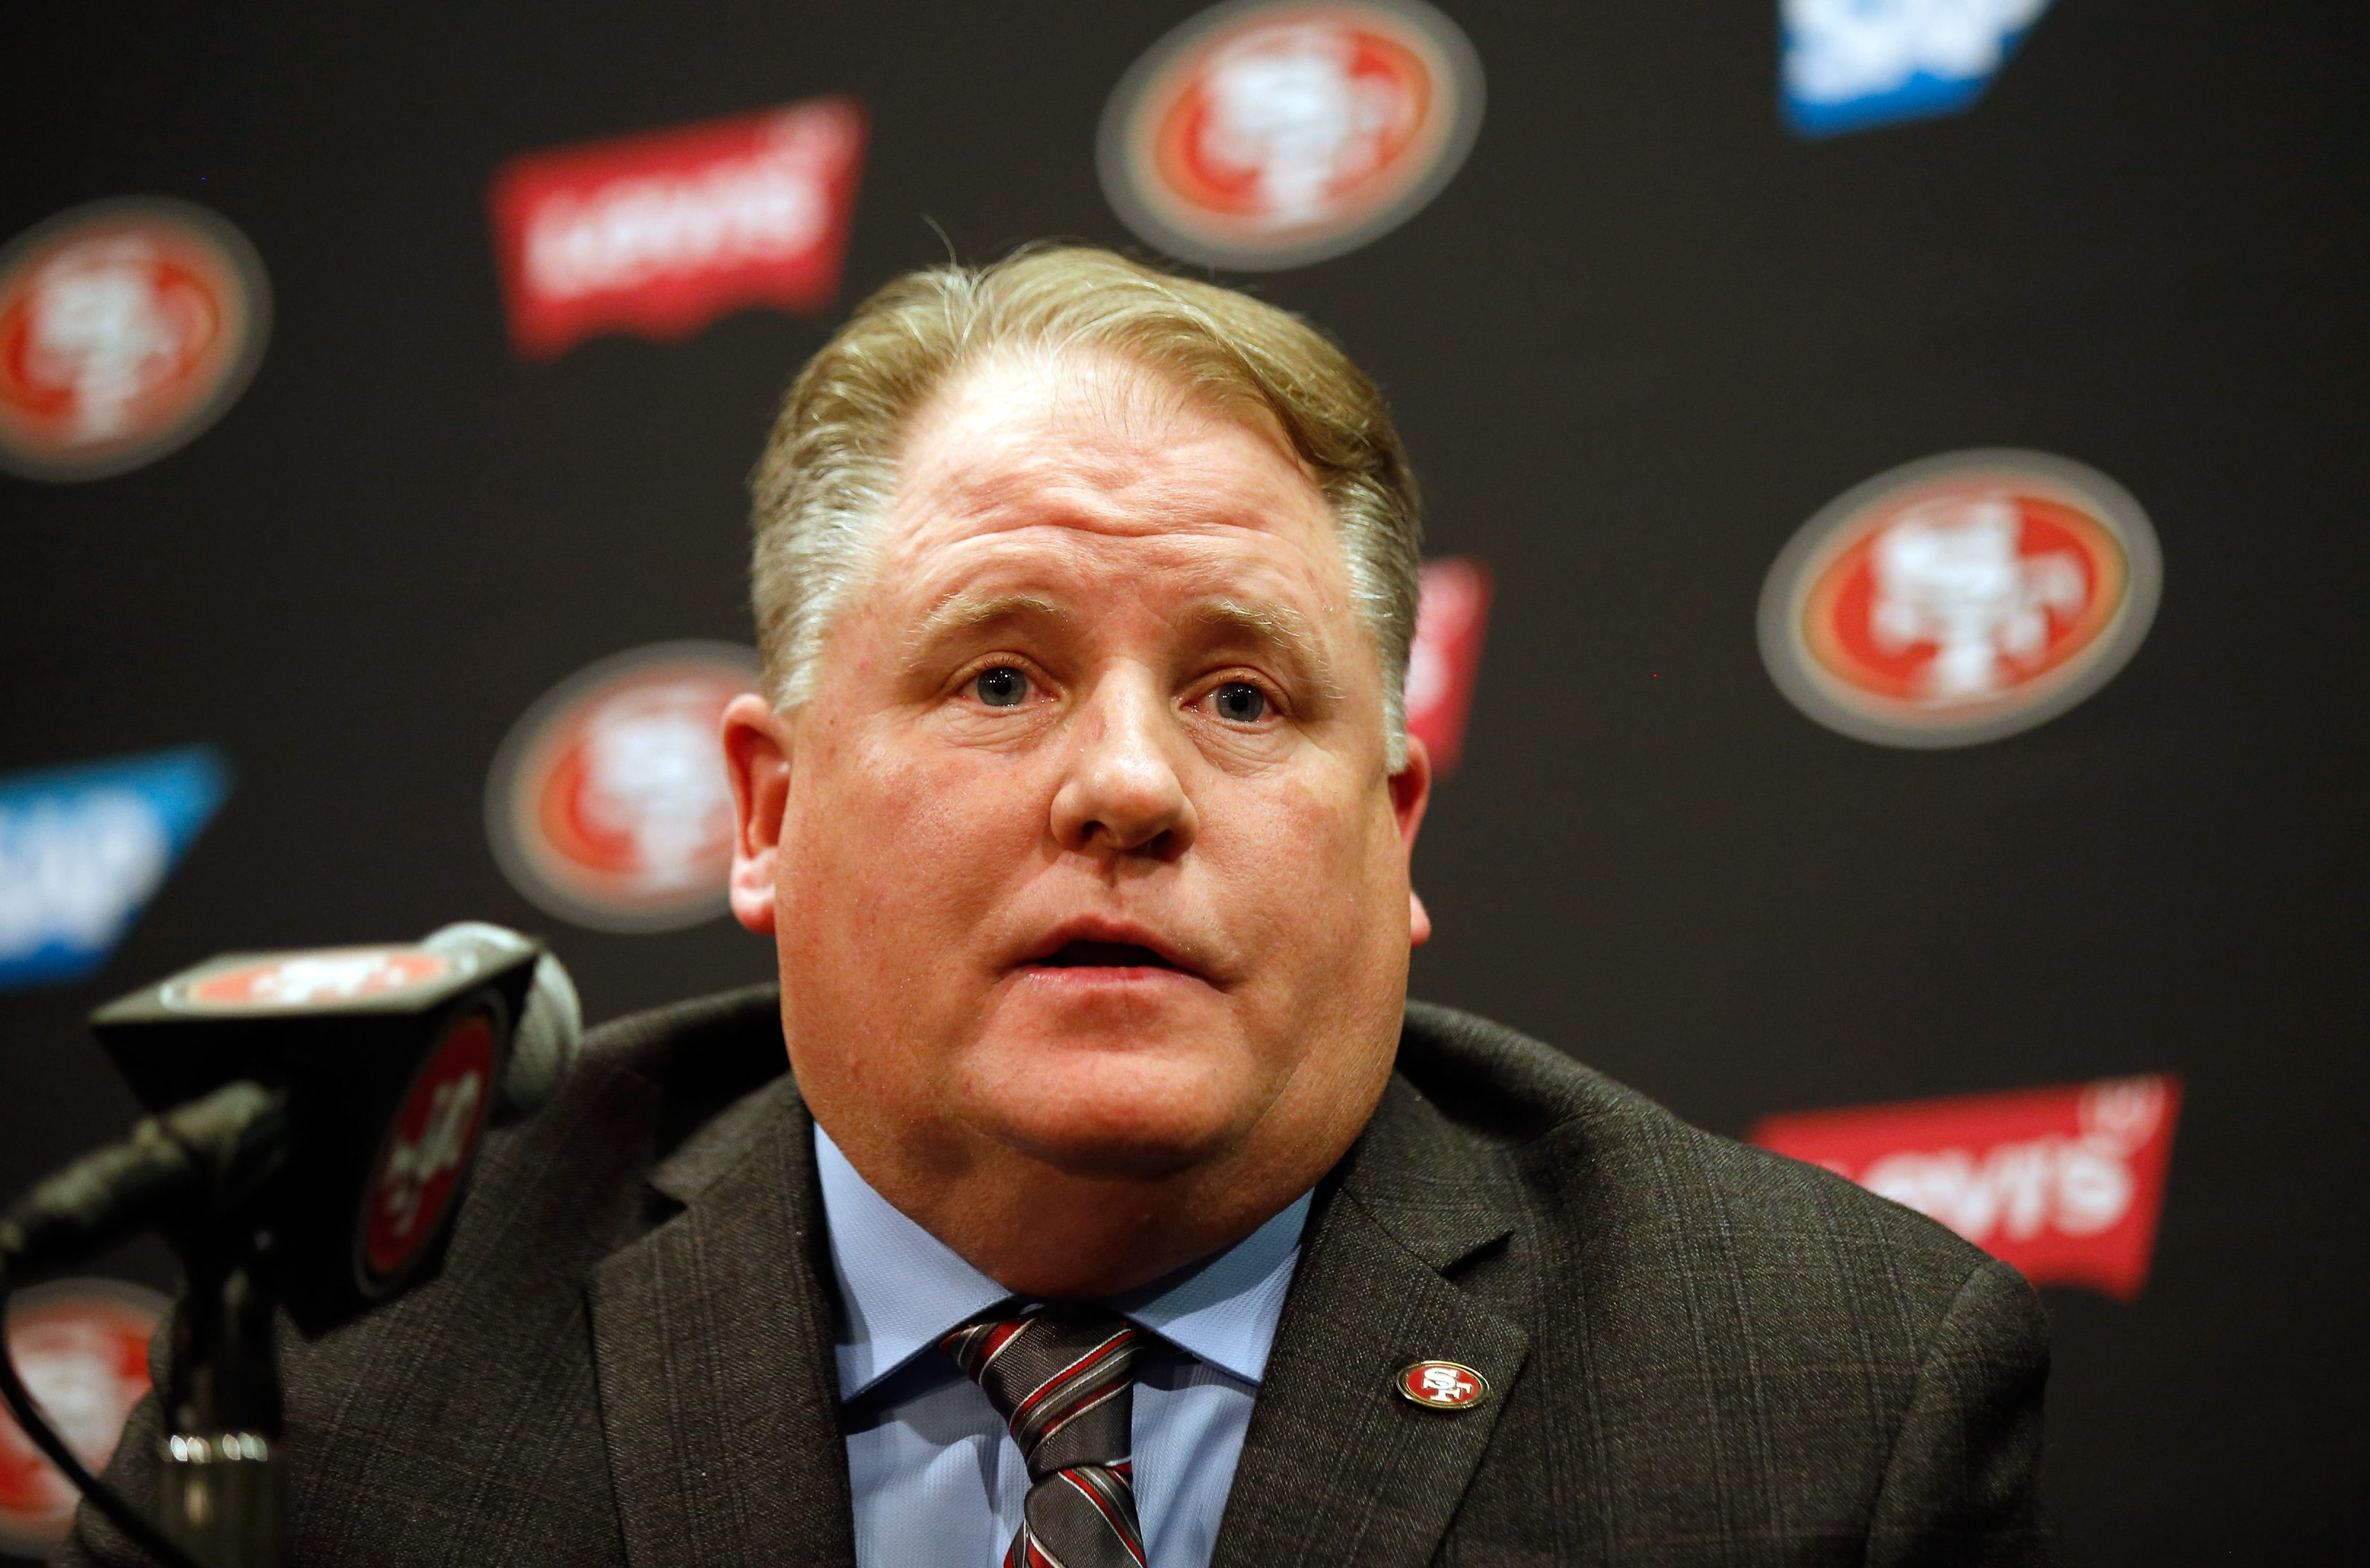 Chip Kelly tried to do too much with the Philadelphia Eagles by doubling as general manager. He'll get back to concentrating solely on coaching as the new head man of the San Francisco 49ers.